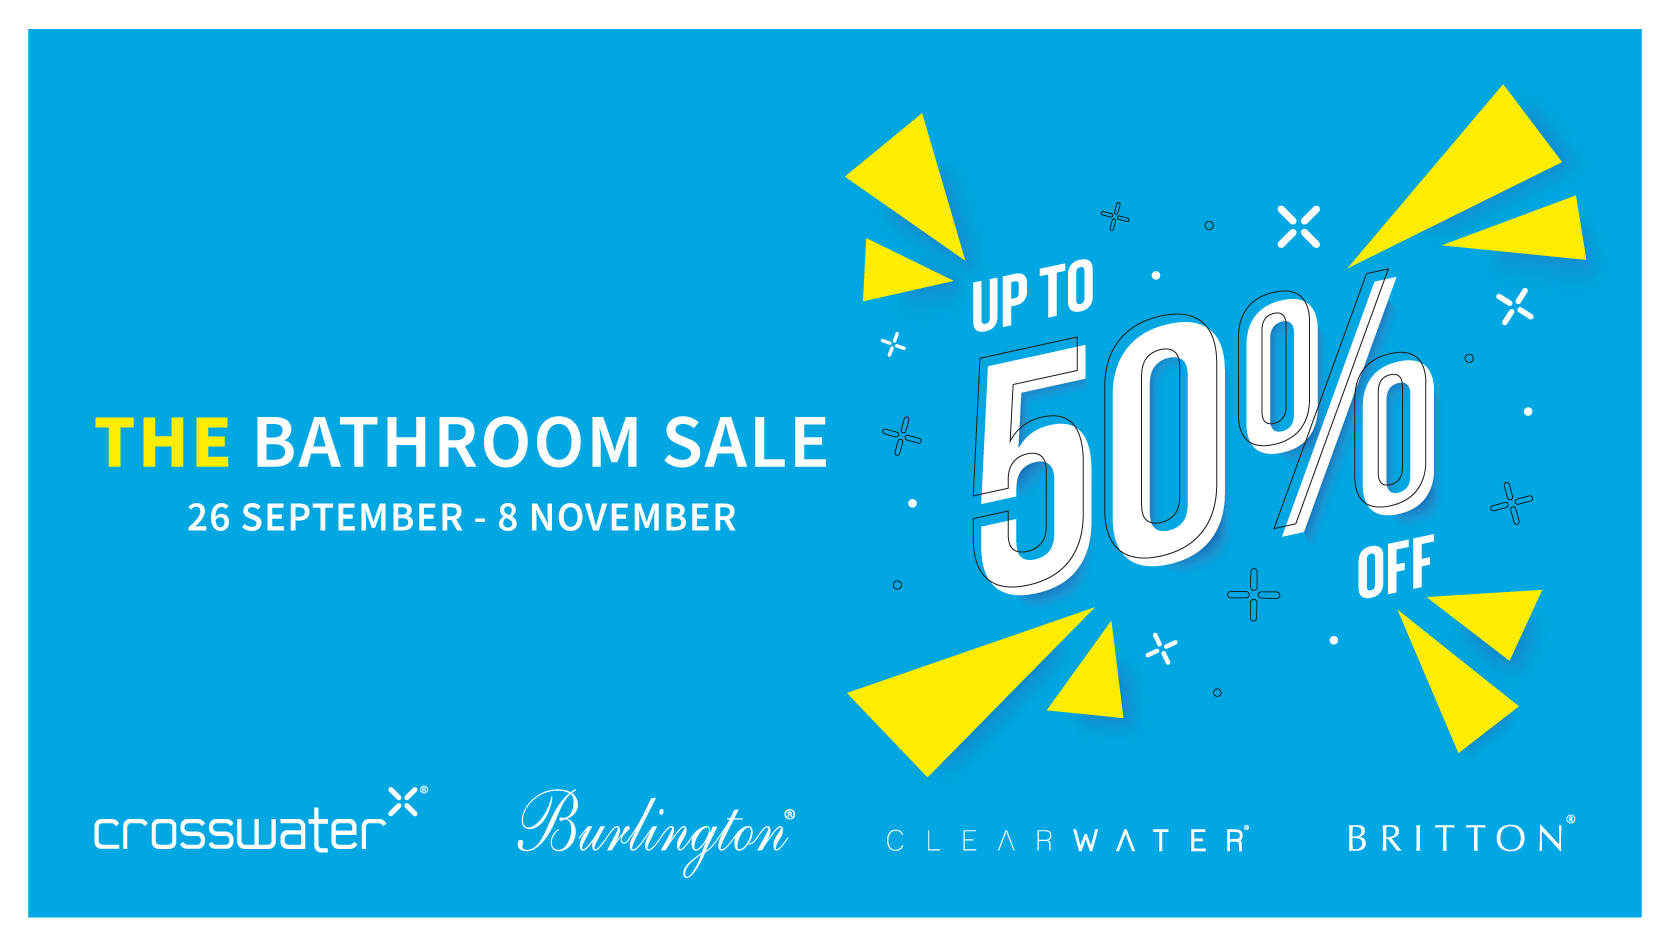 Brown and Co Bathroom Sale – Up to 50% Off All Crosswater Bathrooms